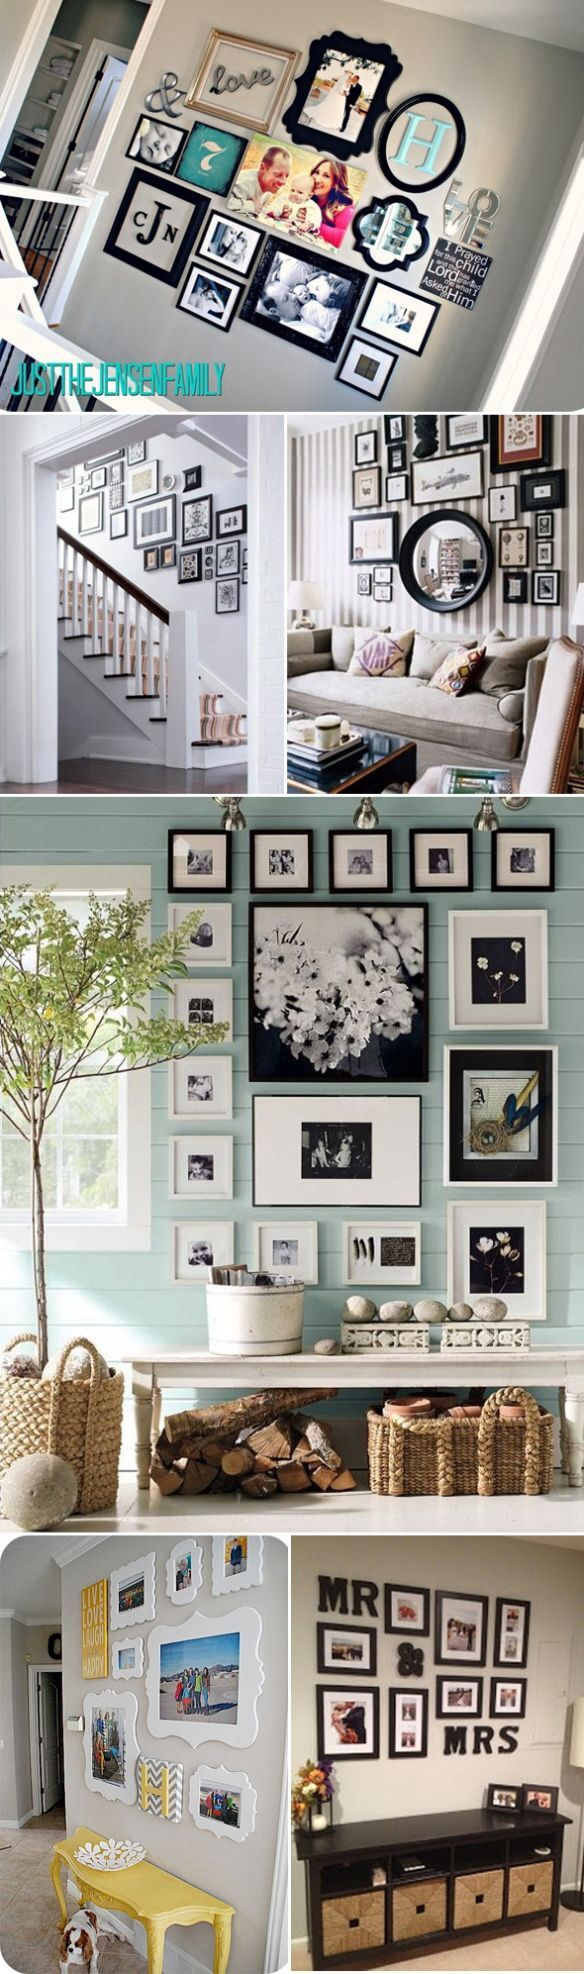 Picture organization. Love the yellow painted table for entryway too.